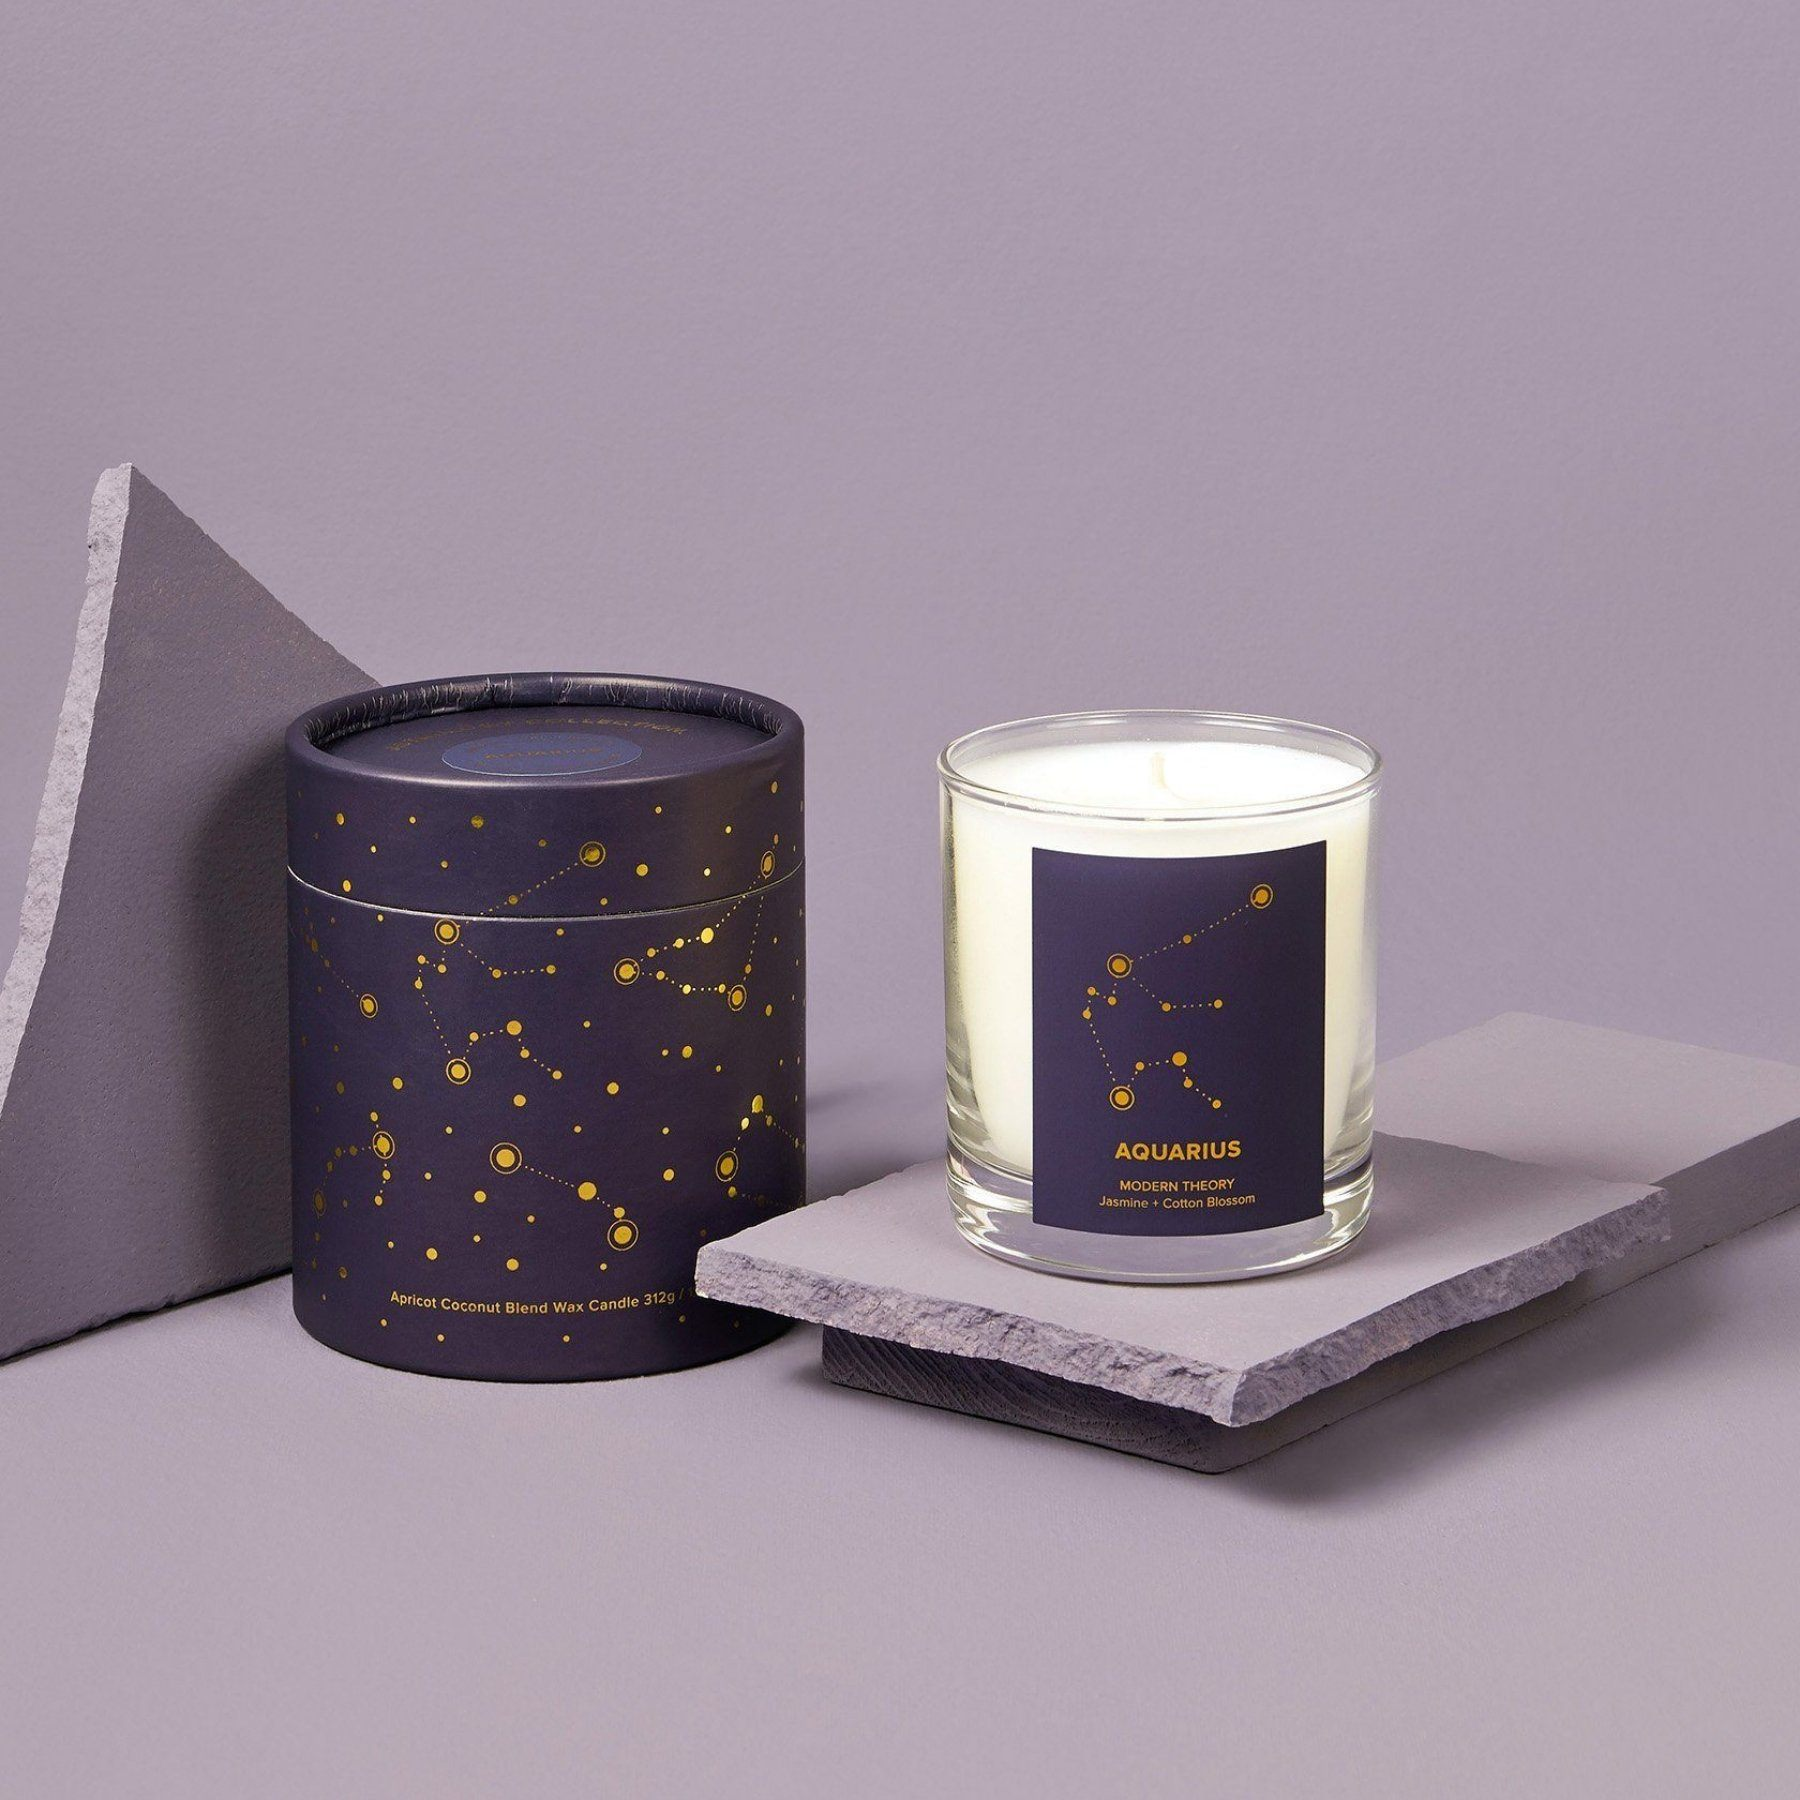 white candle in glass jar with navy label that reads aquarius. Comes with decorative navy box with astrology pattern